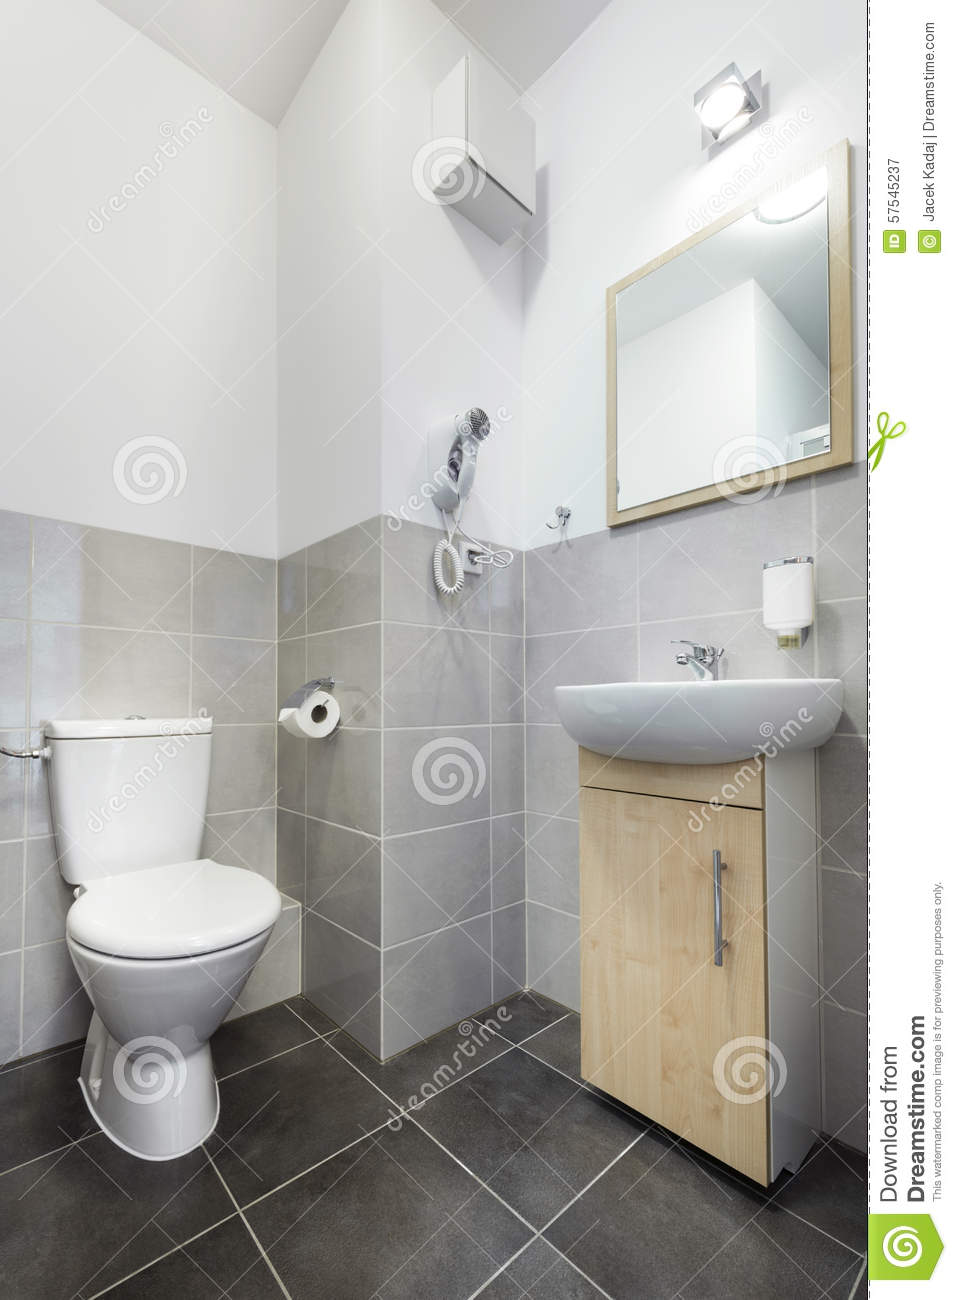 Small And Compact Interior Bathroom Design Stock Image - Image of ...